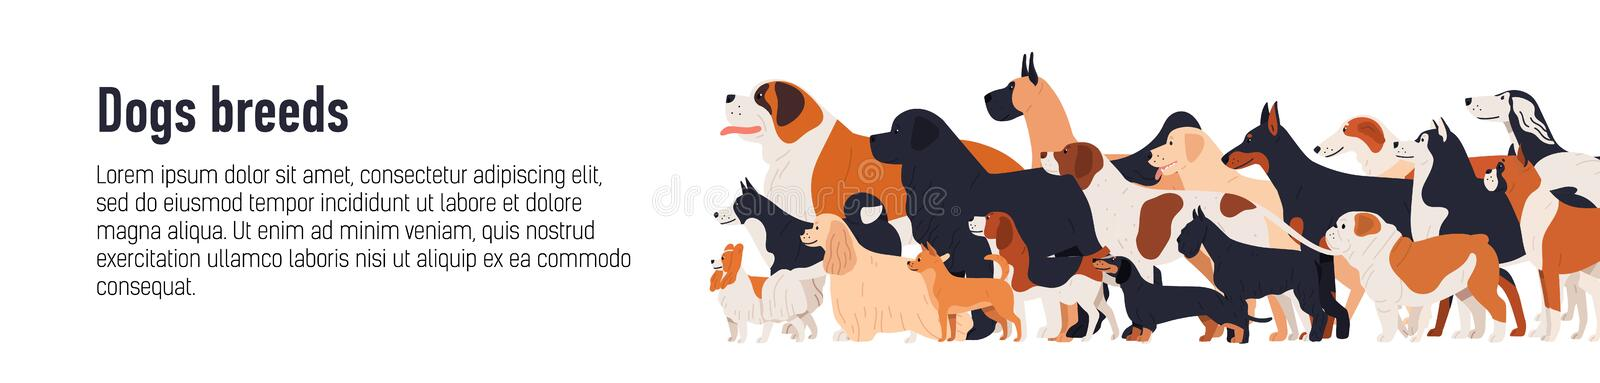 Horizontal web banner template for conformation dog show with adorable doggies of different breeds and place for text stock illustration